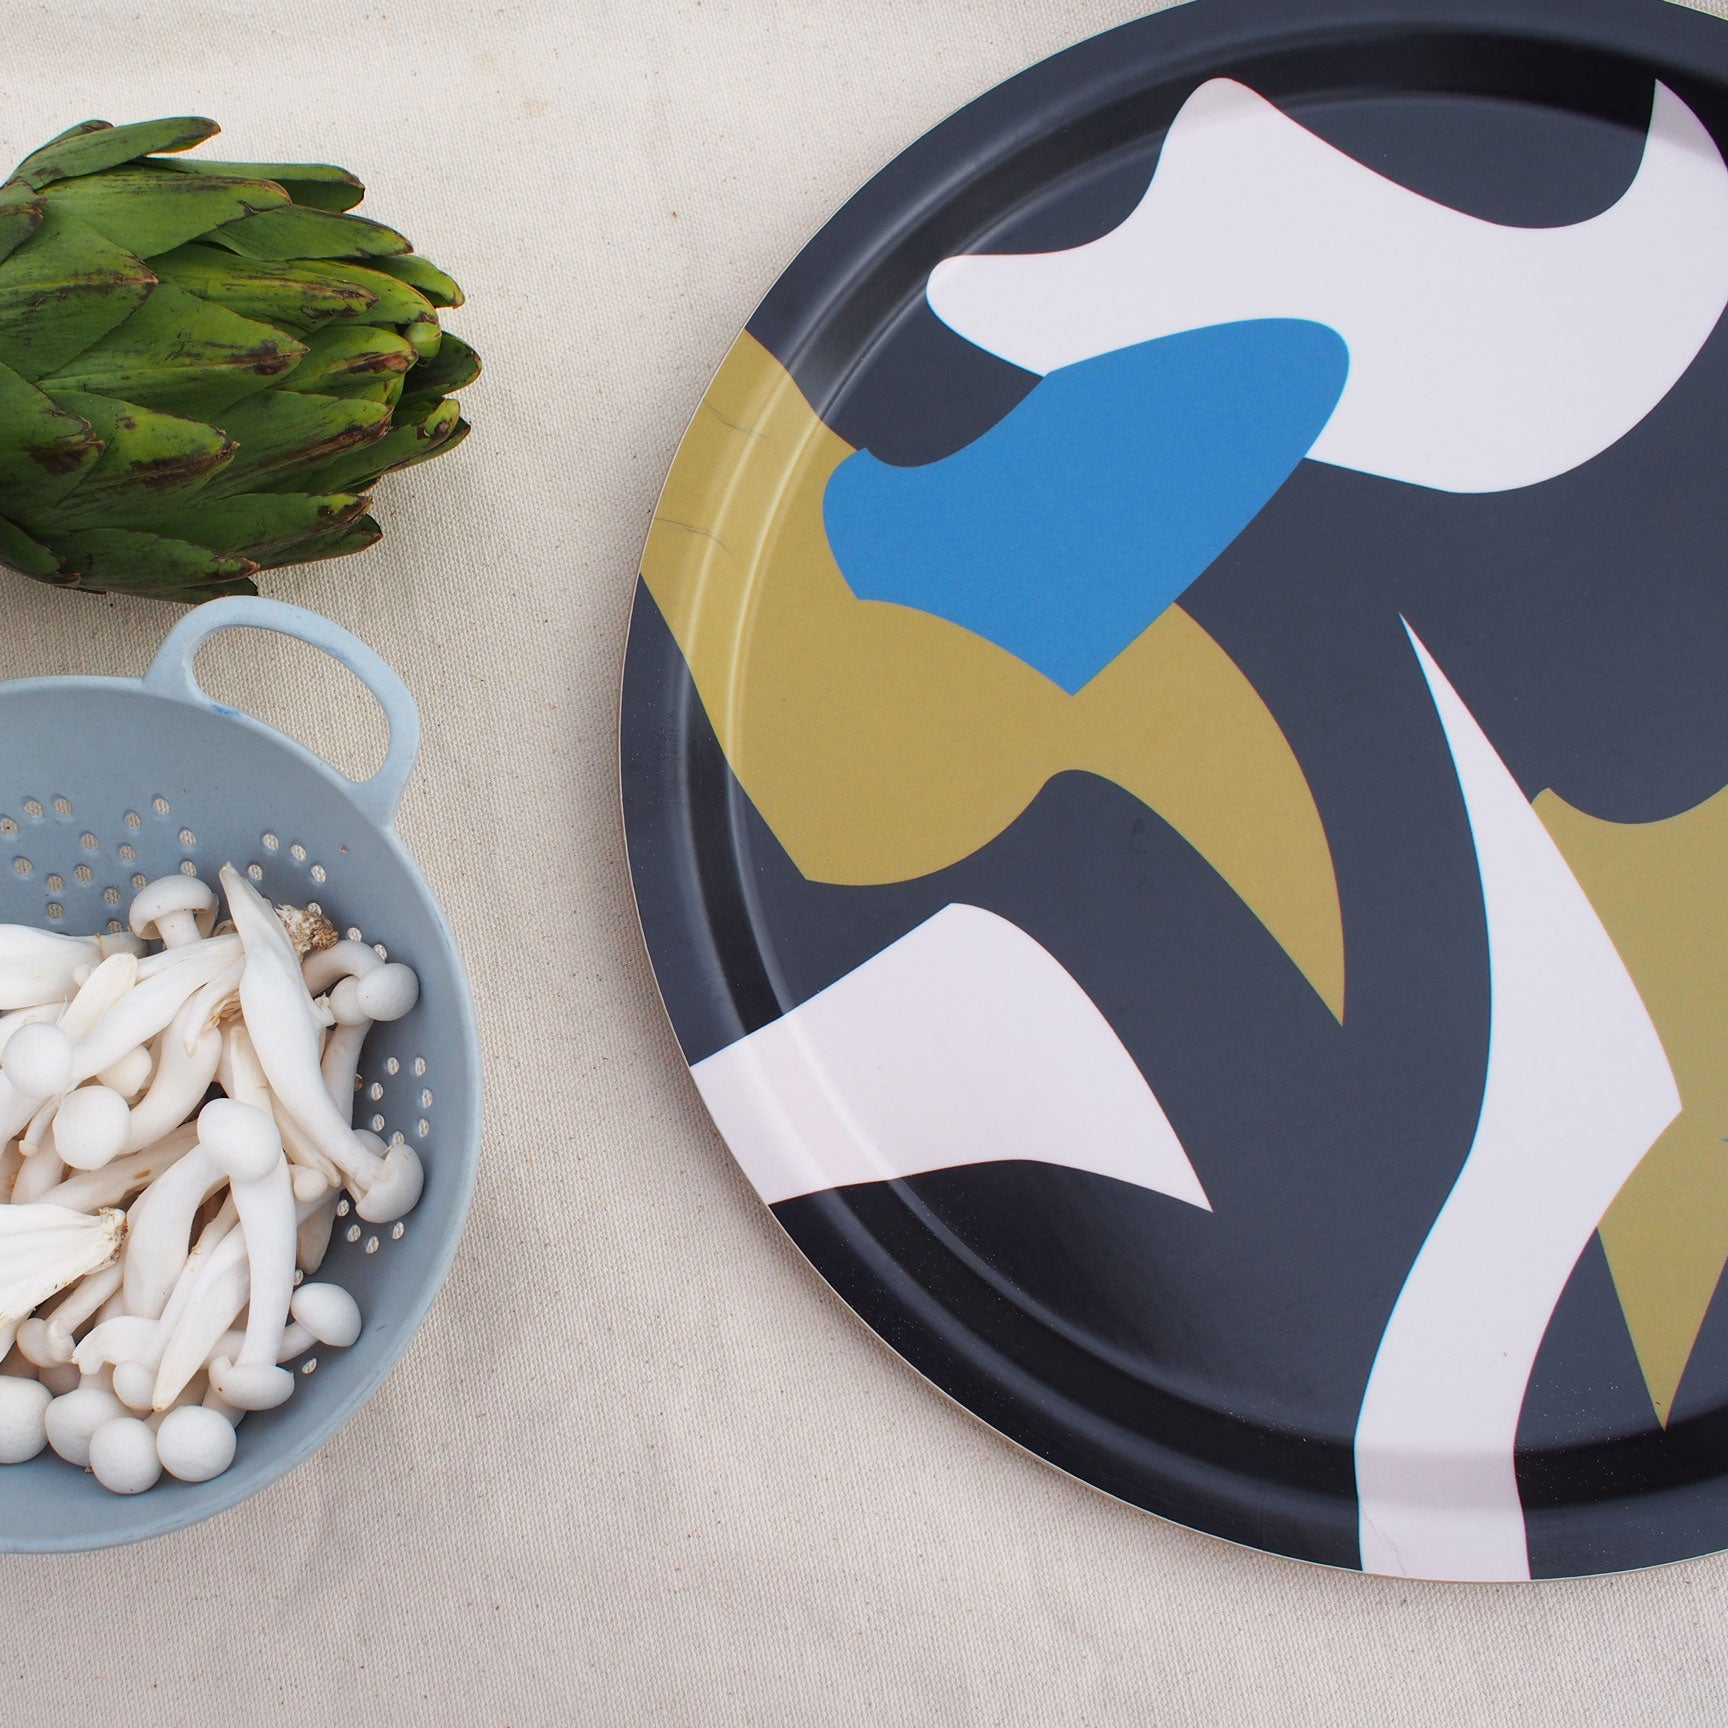 Fabulous Round Birch Wood Serving Tray Black Blue Form And Trace Machost Co Dining Chair Design Ideas Machostcouk